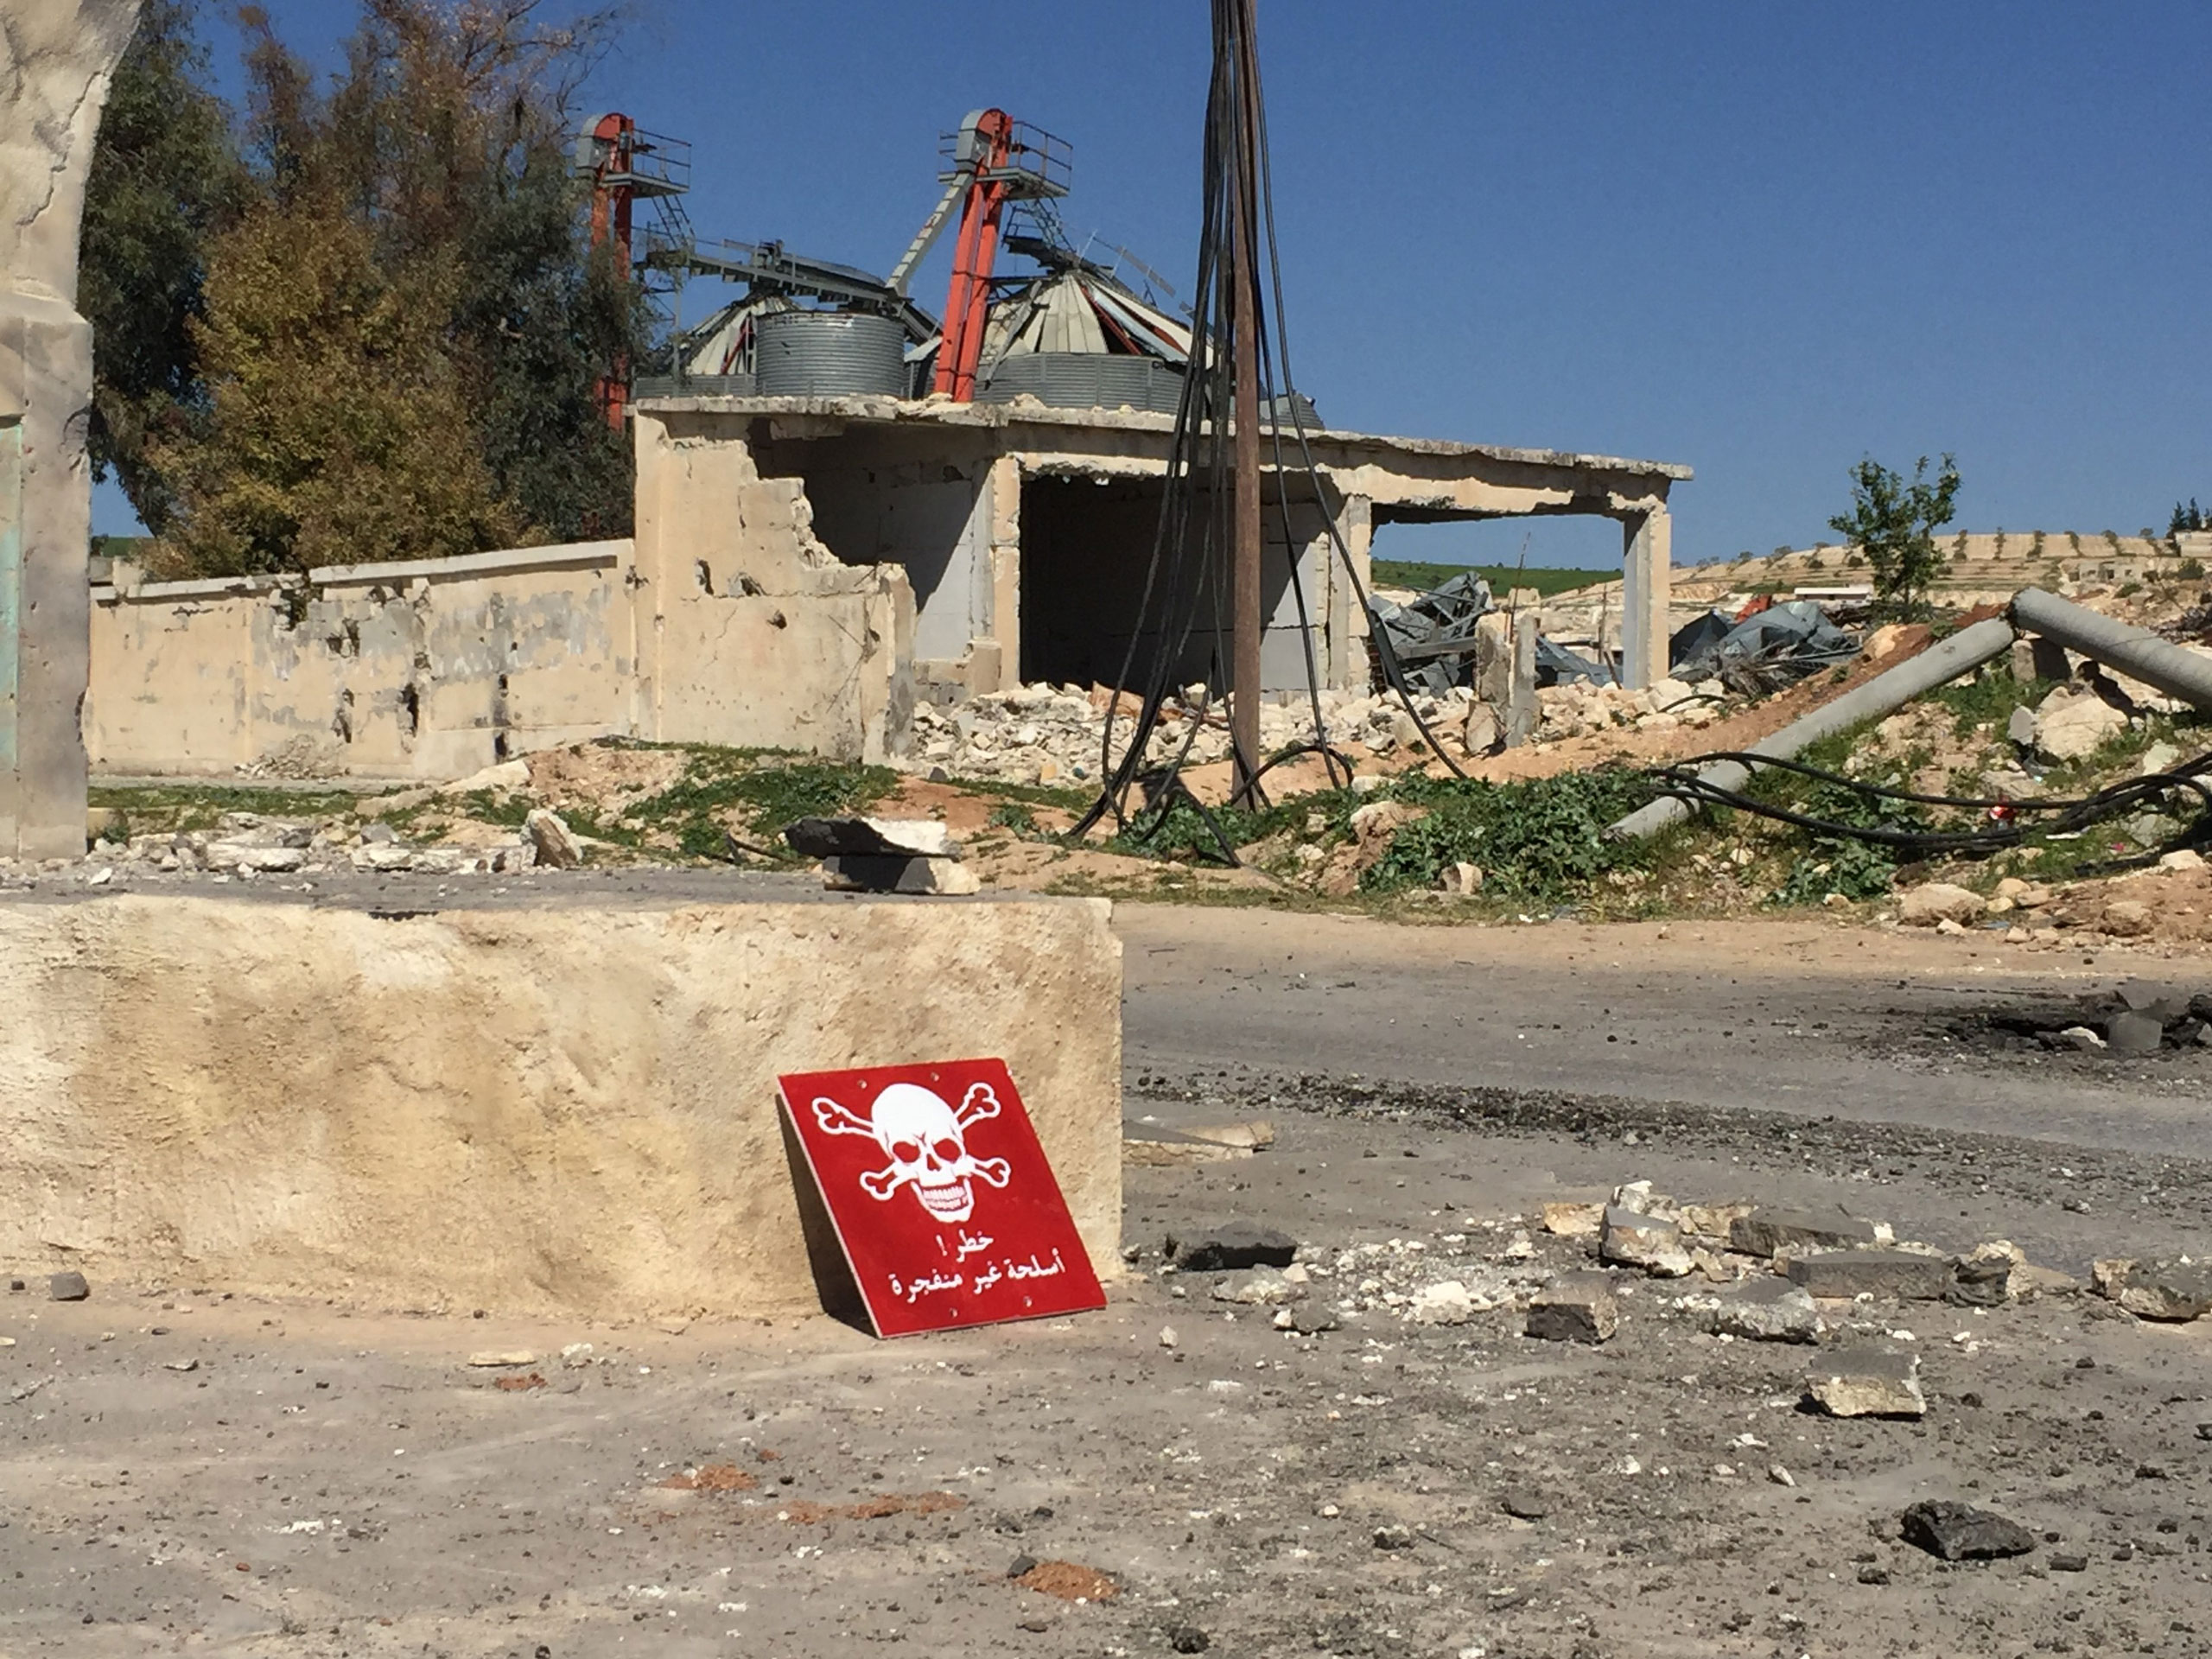 A poison hazard danger sign is seen in the town of Khan Shaykun, Idlib province, Syria on April 5, 2017.